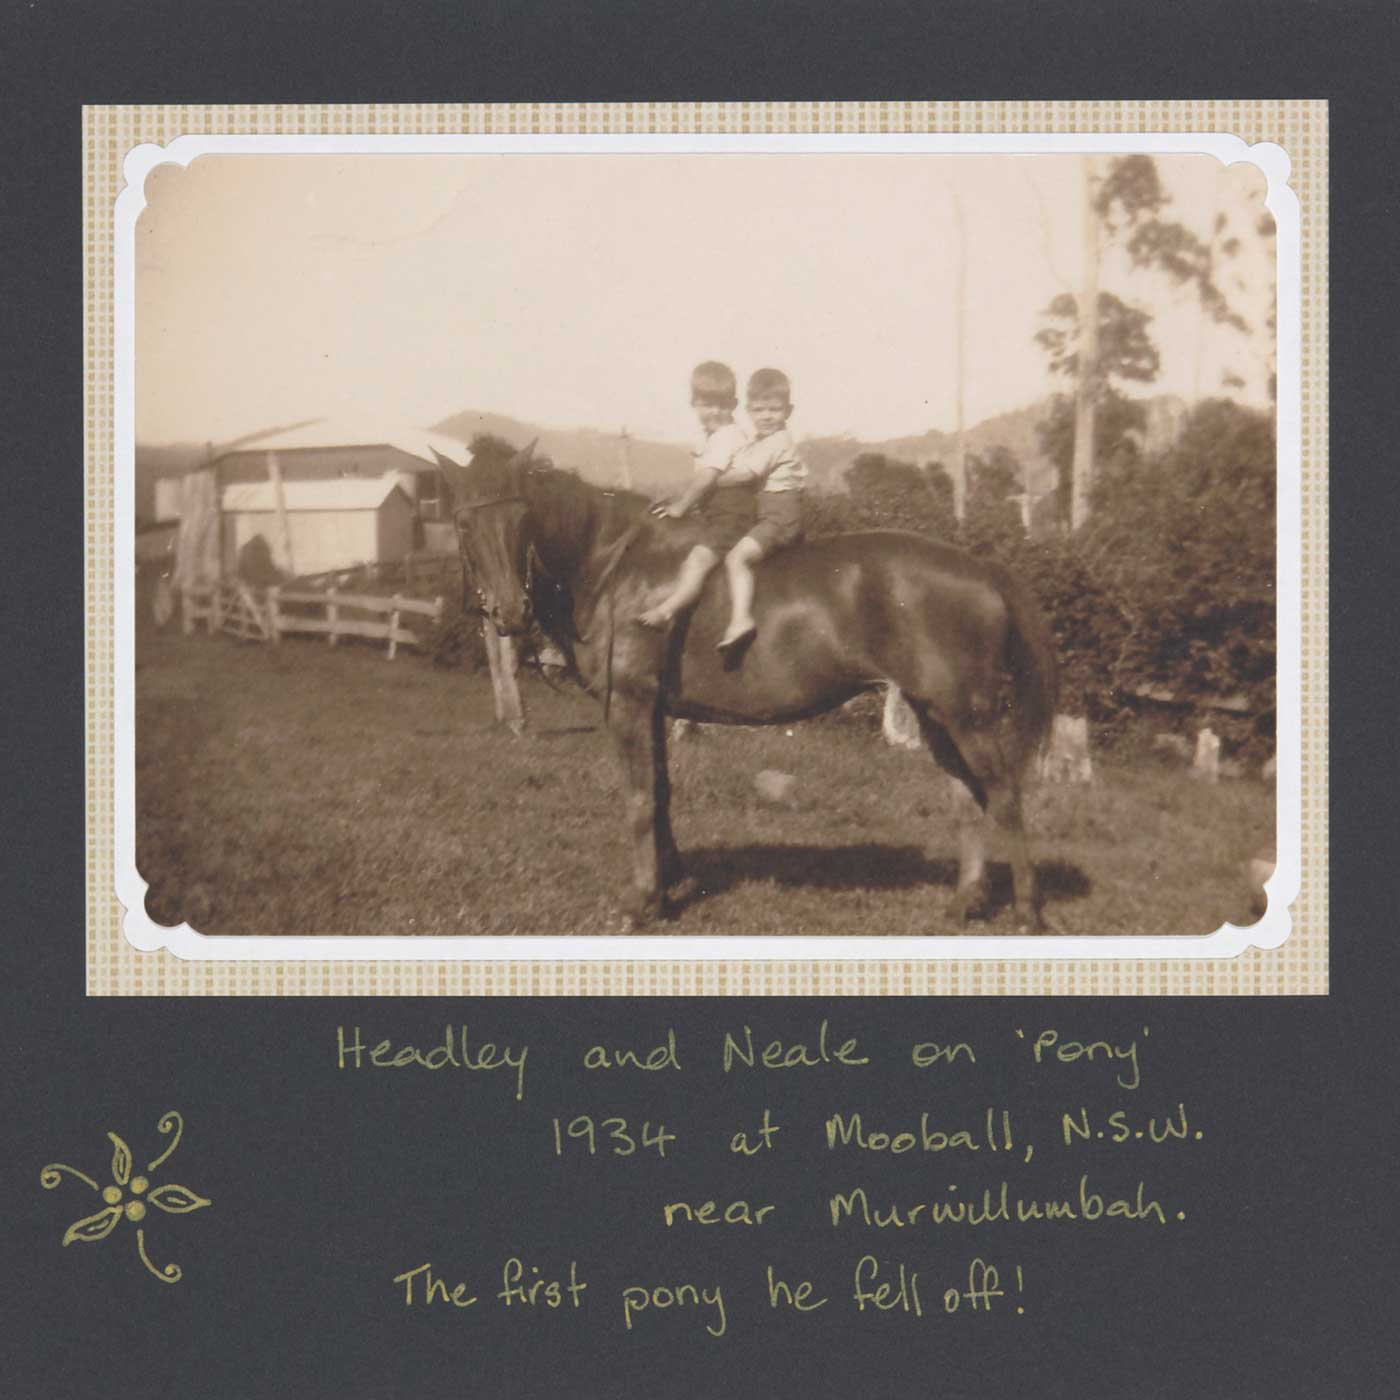 Headley and Neale (at back) double-dinking on Pony, at Mooball, near Murwillumbah, 1934 - click to view larger image